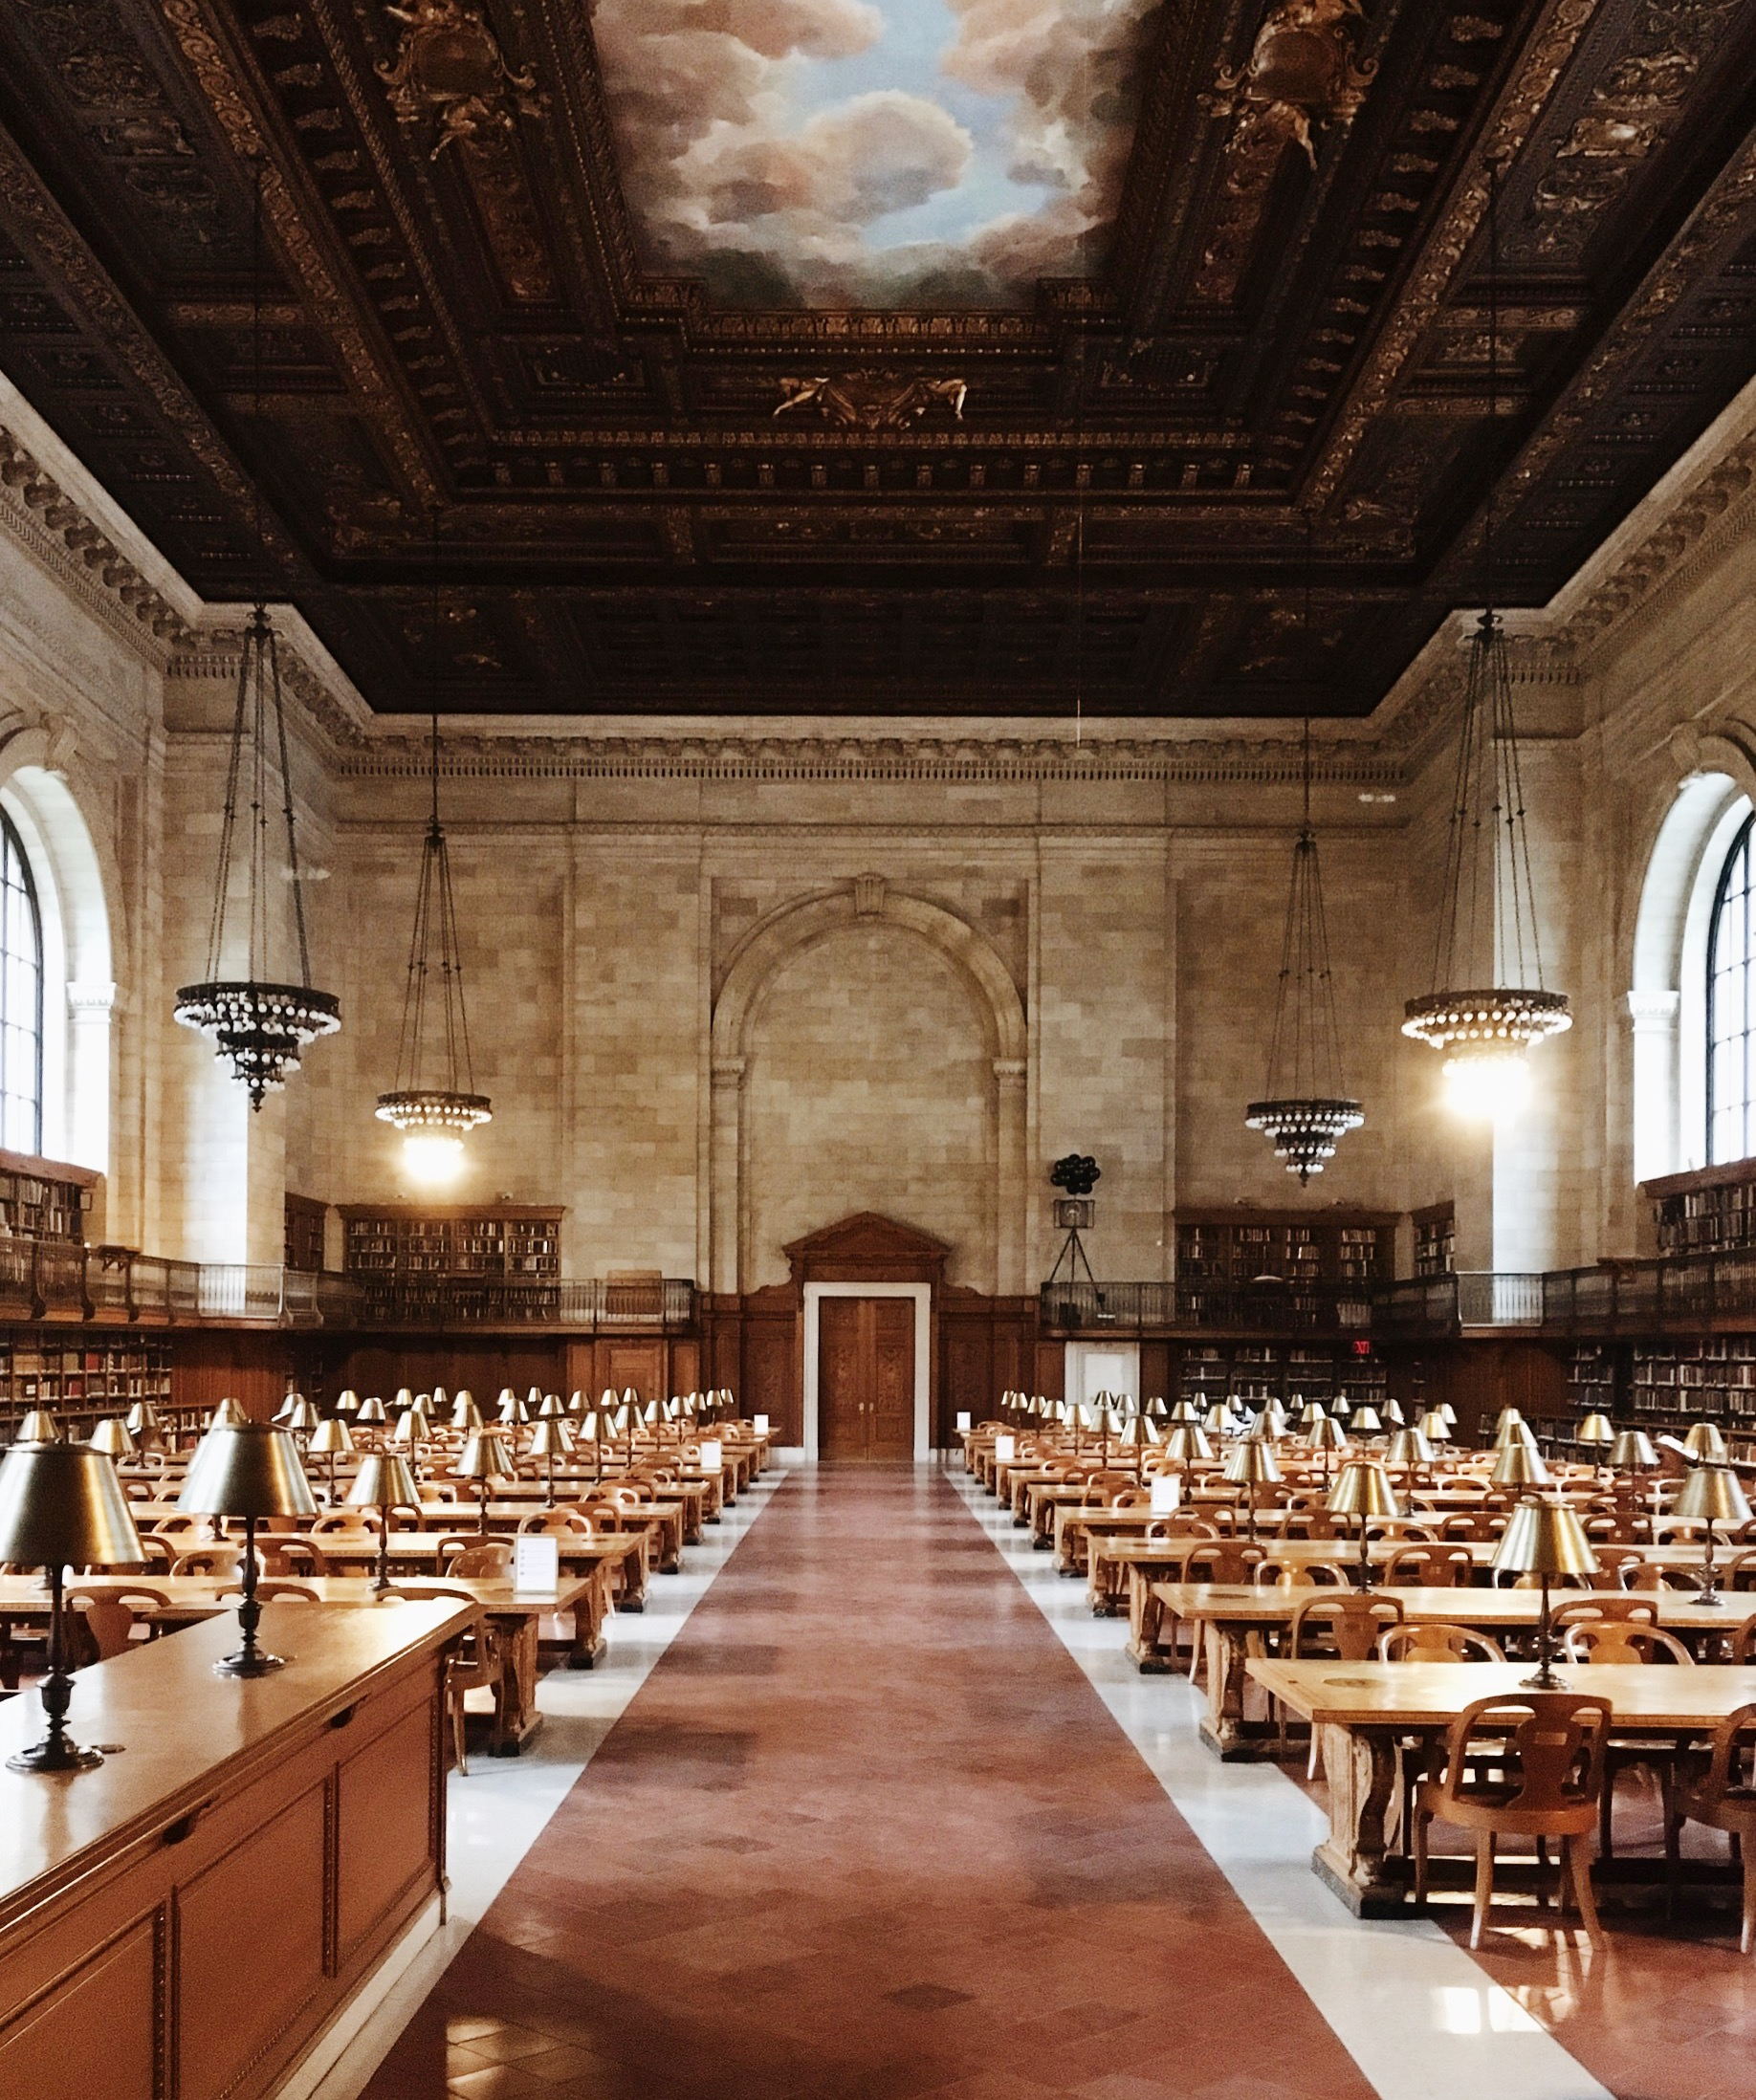 The renovated New York Public Library Rose Reading Room